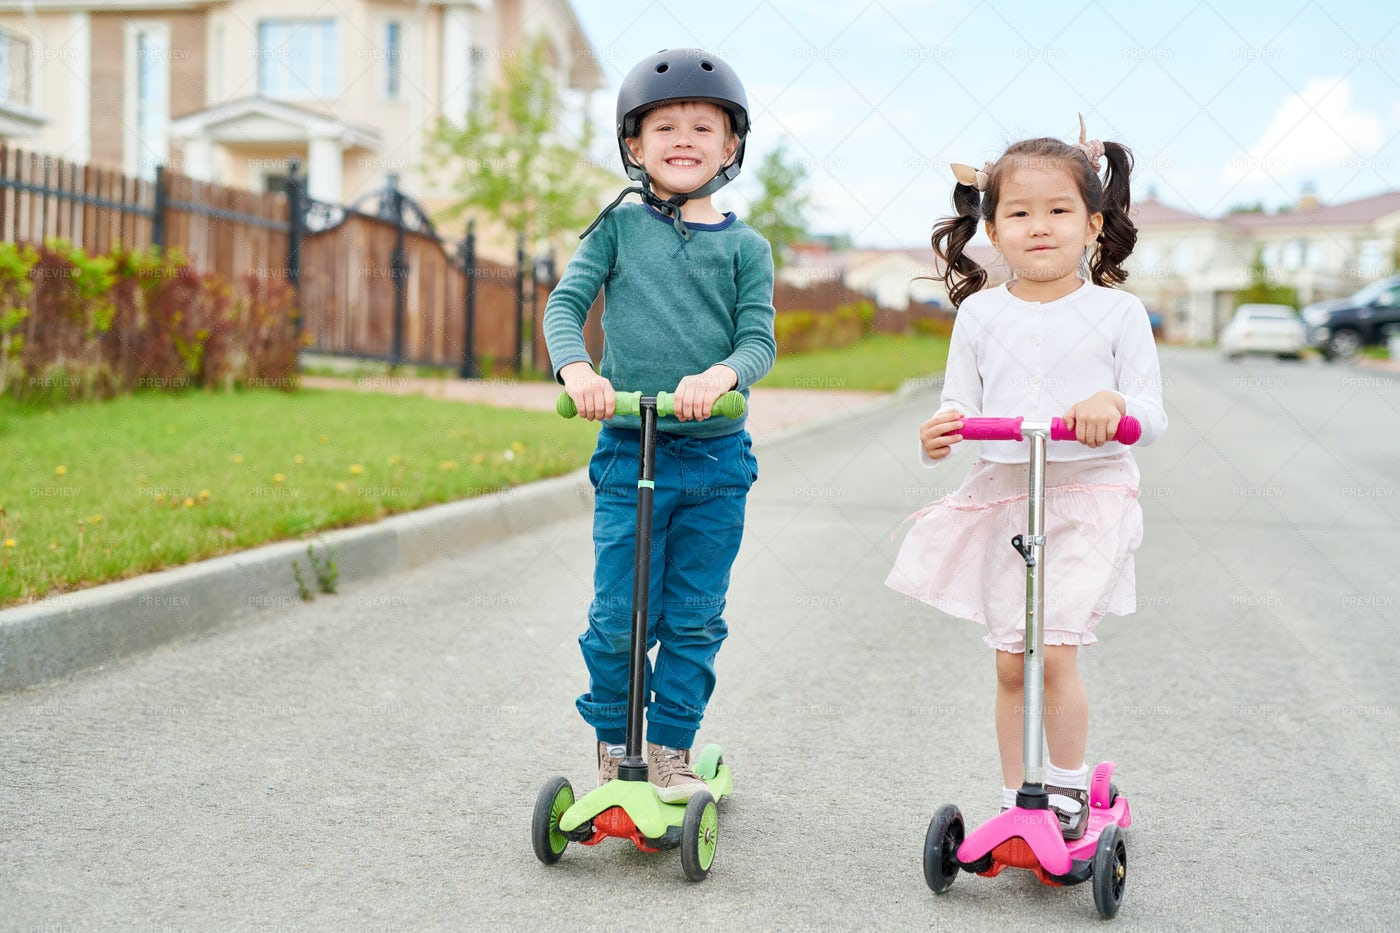 Two Cute Children Riding Scooters: Stock Photos